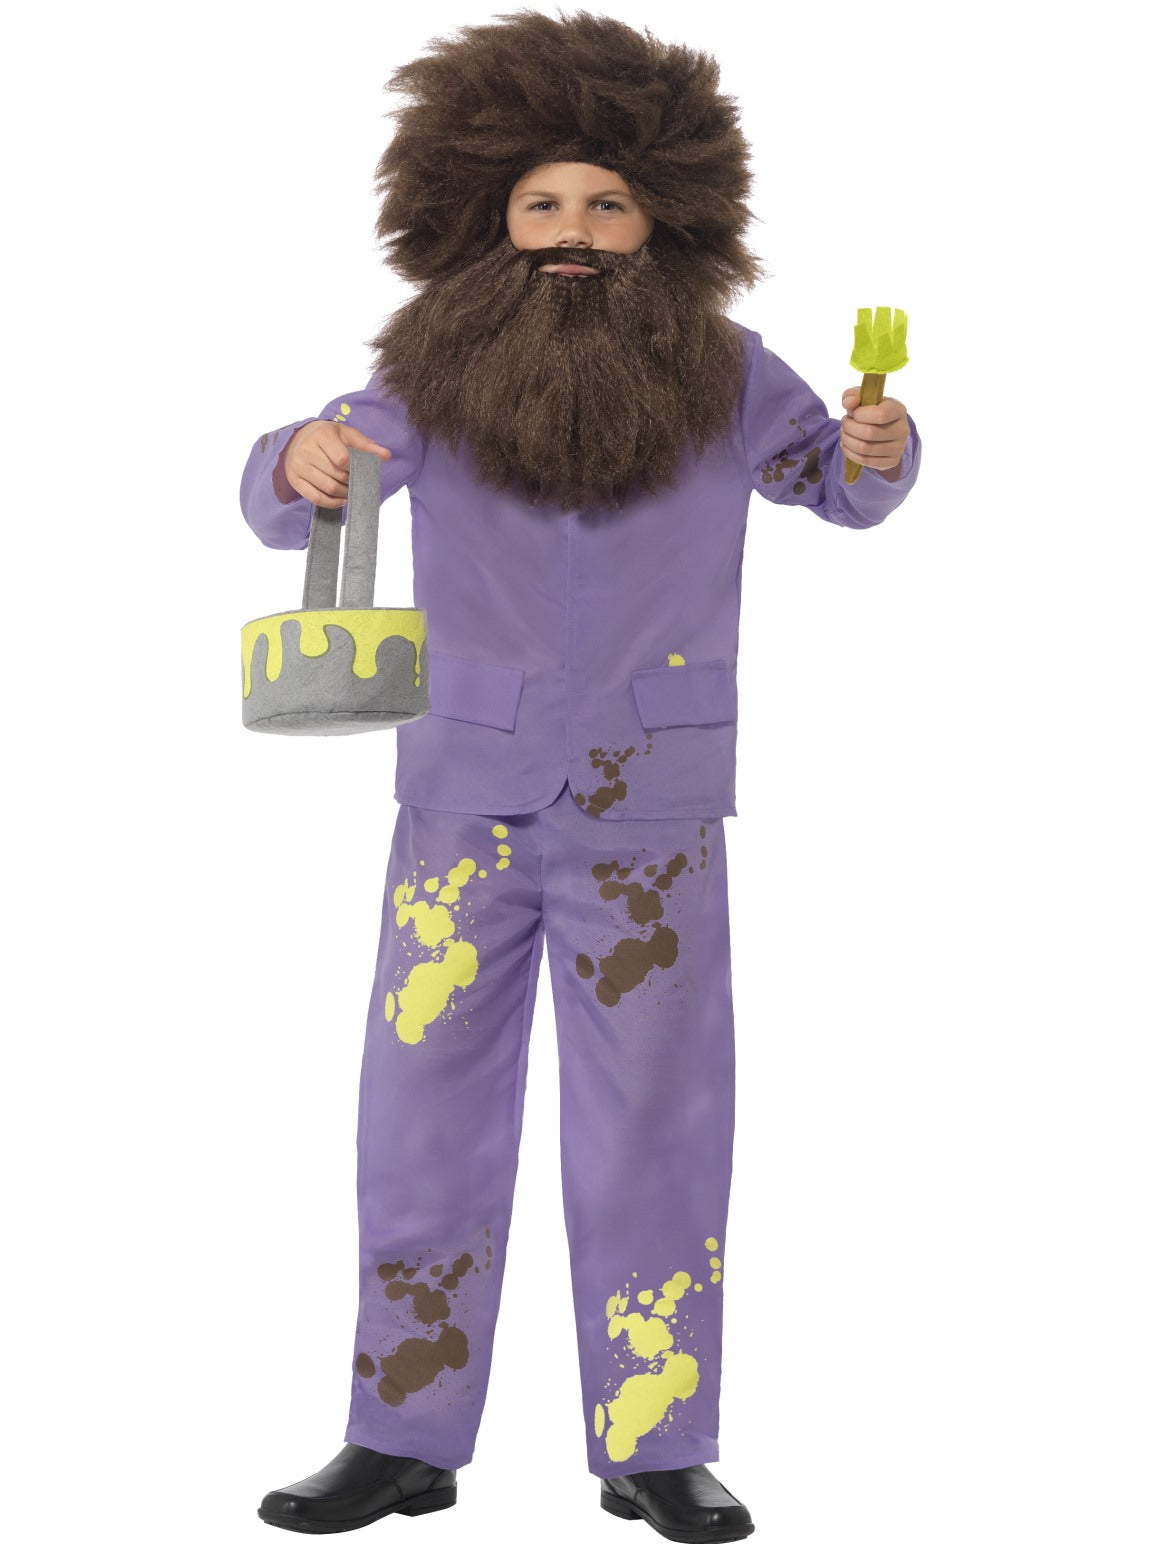 Boys Costume - Roald Dahl Mr Twit